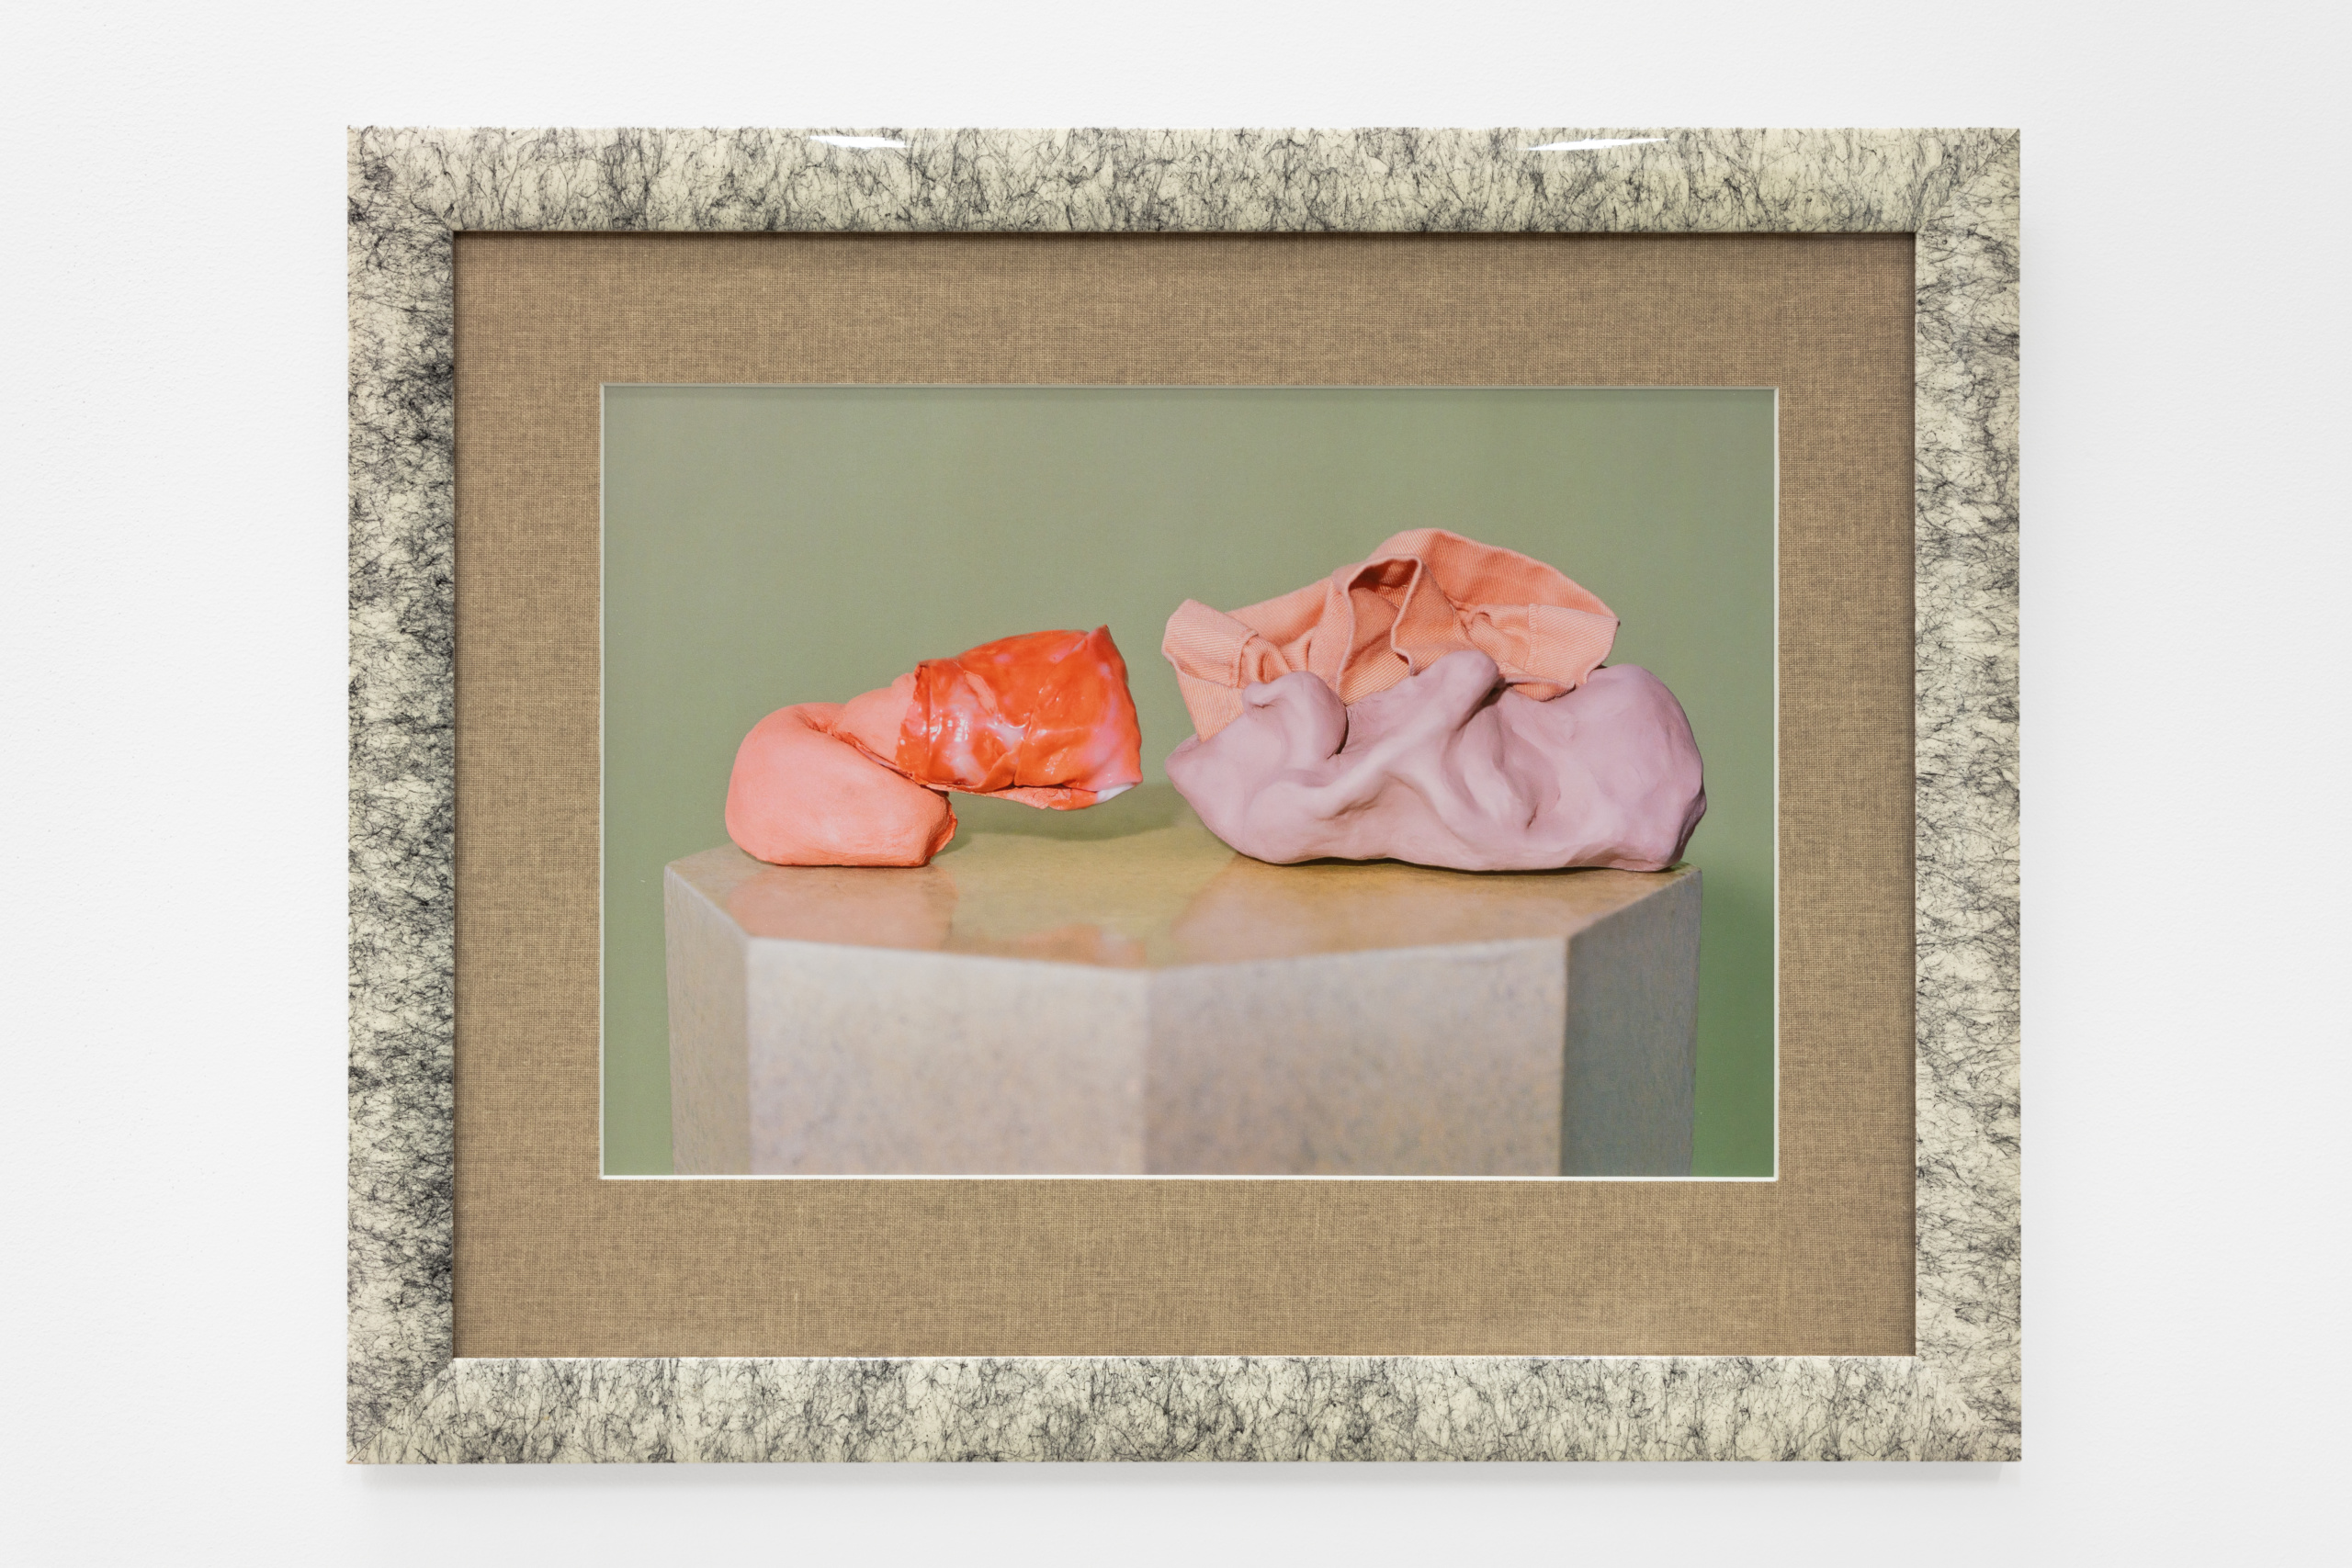 Maya Fuhr, Untitled, 2020, 20 x 25 in. Courtesy of the artist and Patel Brown Gallery.